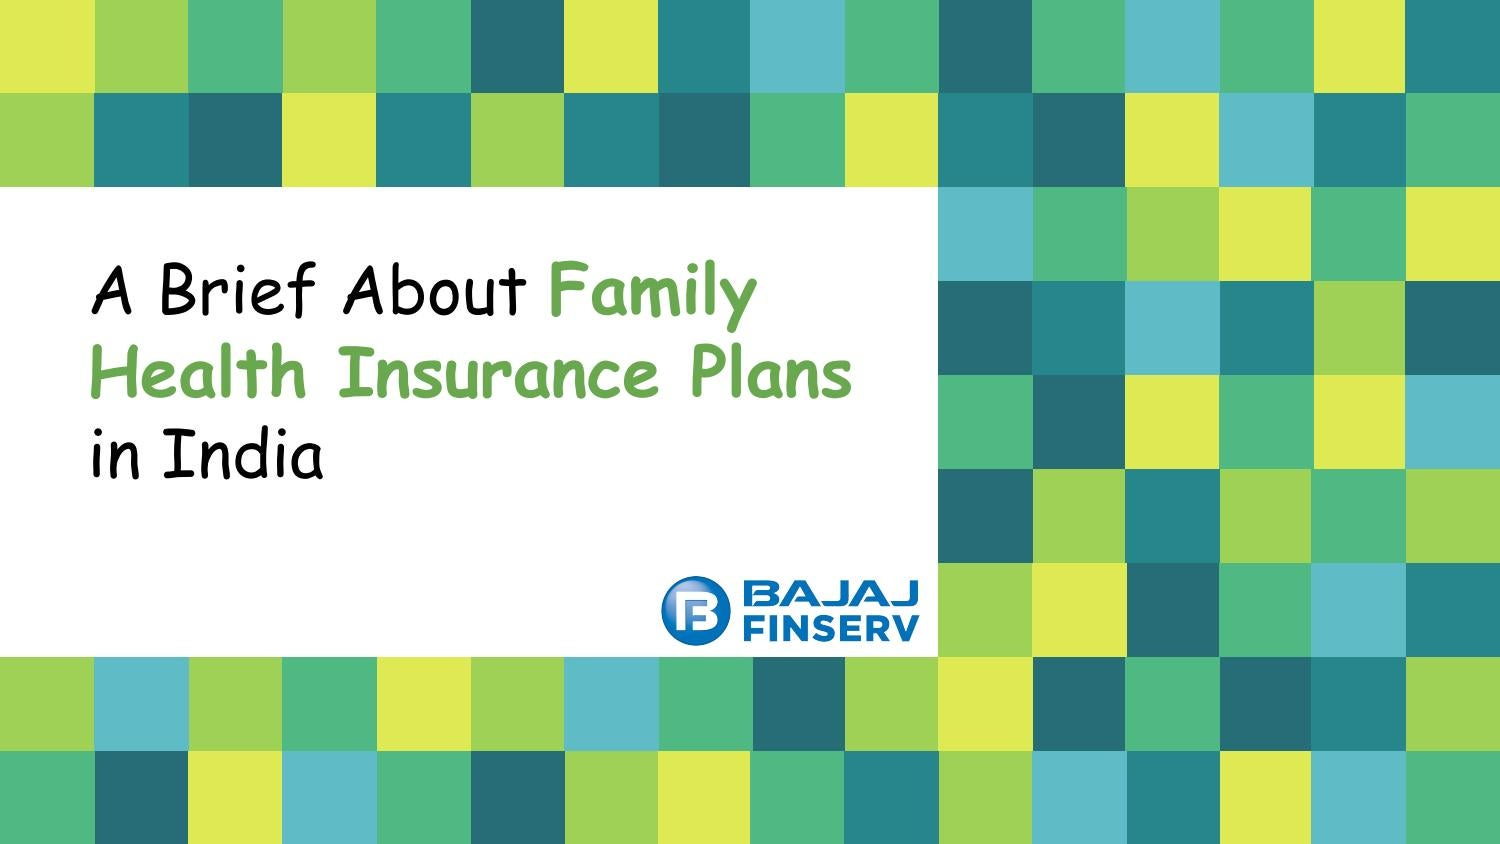 Health Insurance Plans >> A Brief About Family Health Insurance Plans In India By